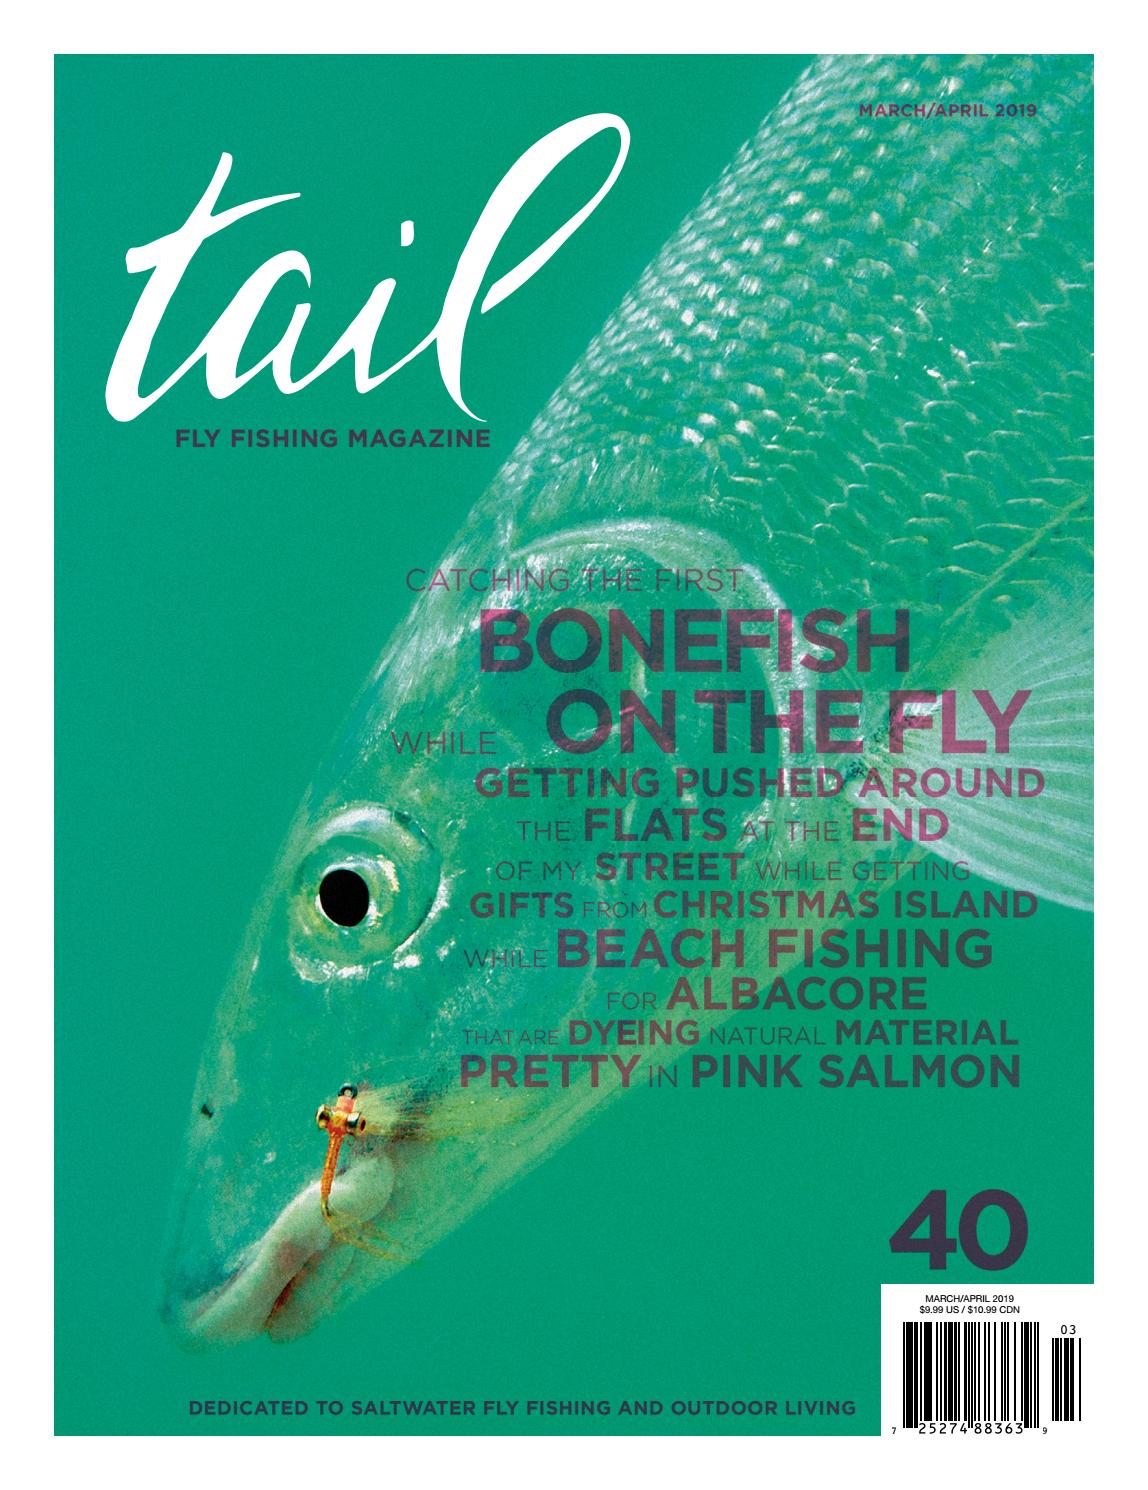 b6e7fad3c7d3 Tail Fly Fishing Magazine - Issue 40 - March April 2019 by Tail Fly Fishing  Magazine - issuu